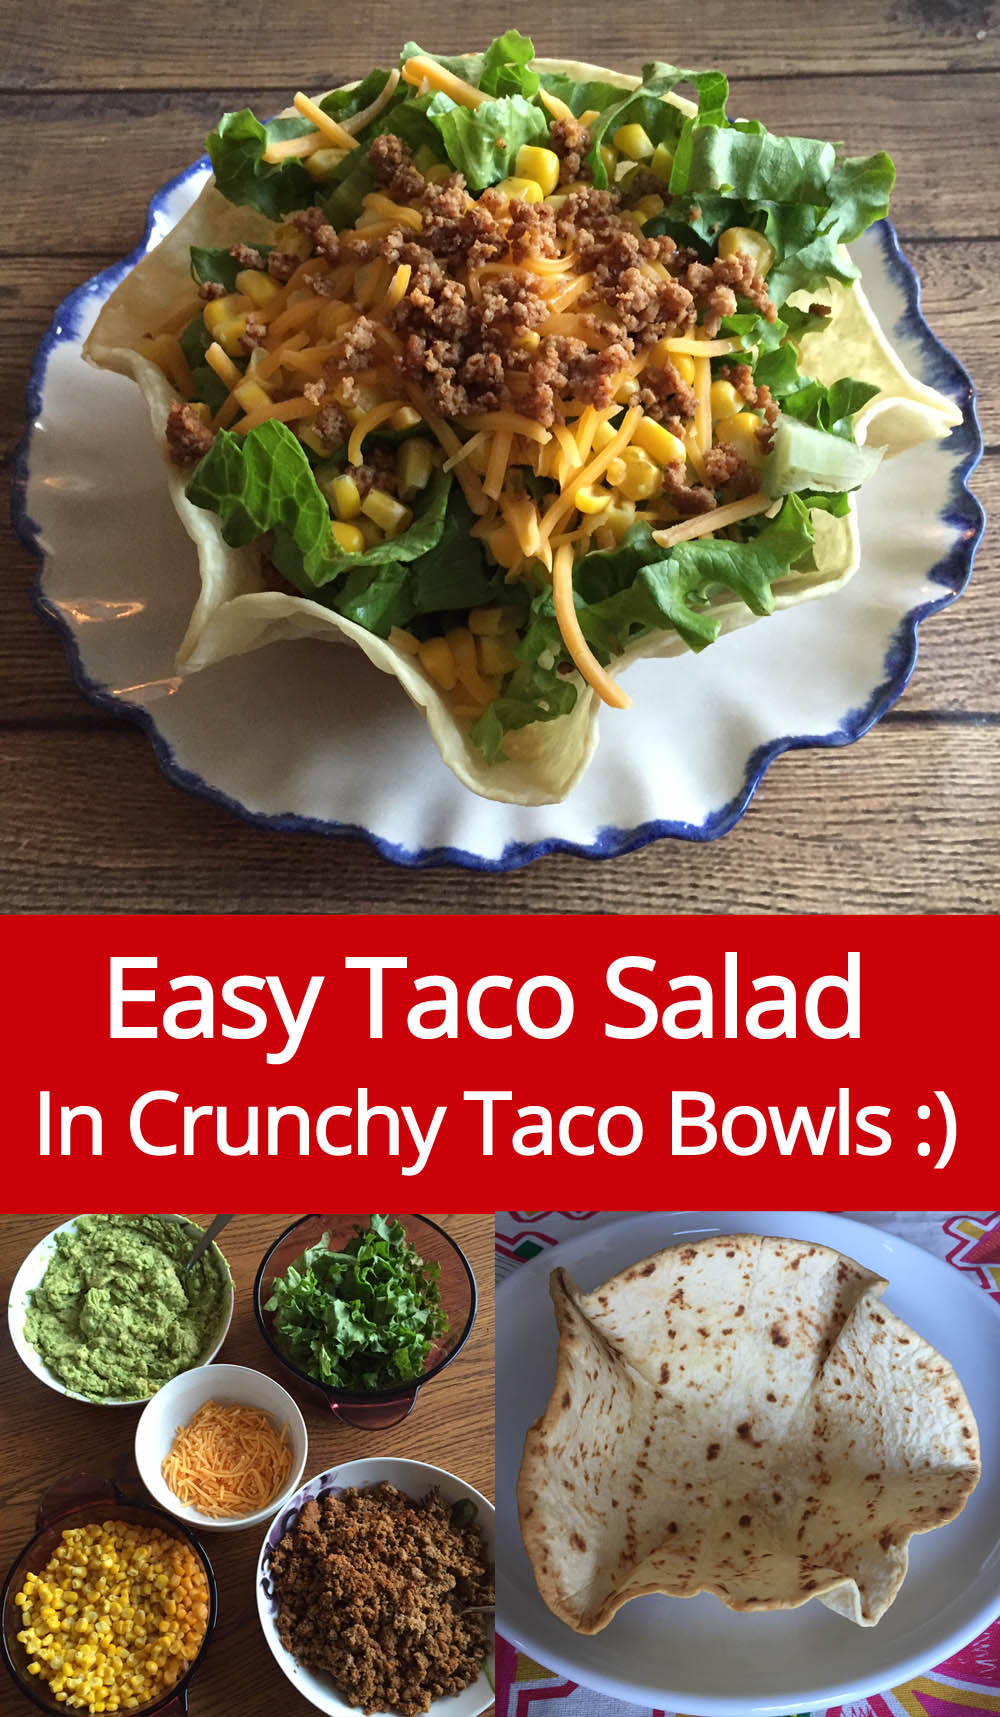 Taco Salad Recipe In Crunchy Baked Taco Shell Bowls - Easy, Healthy and Delicious!